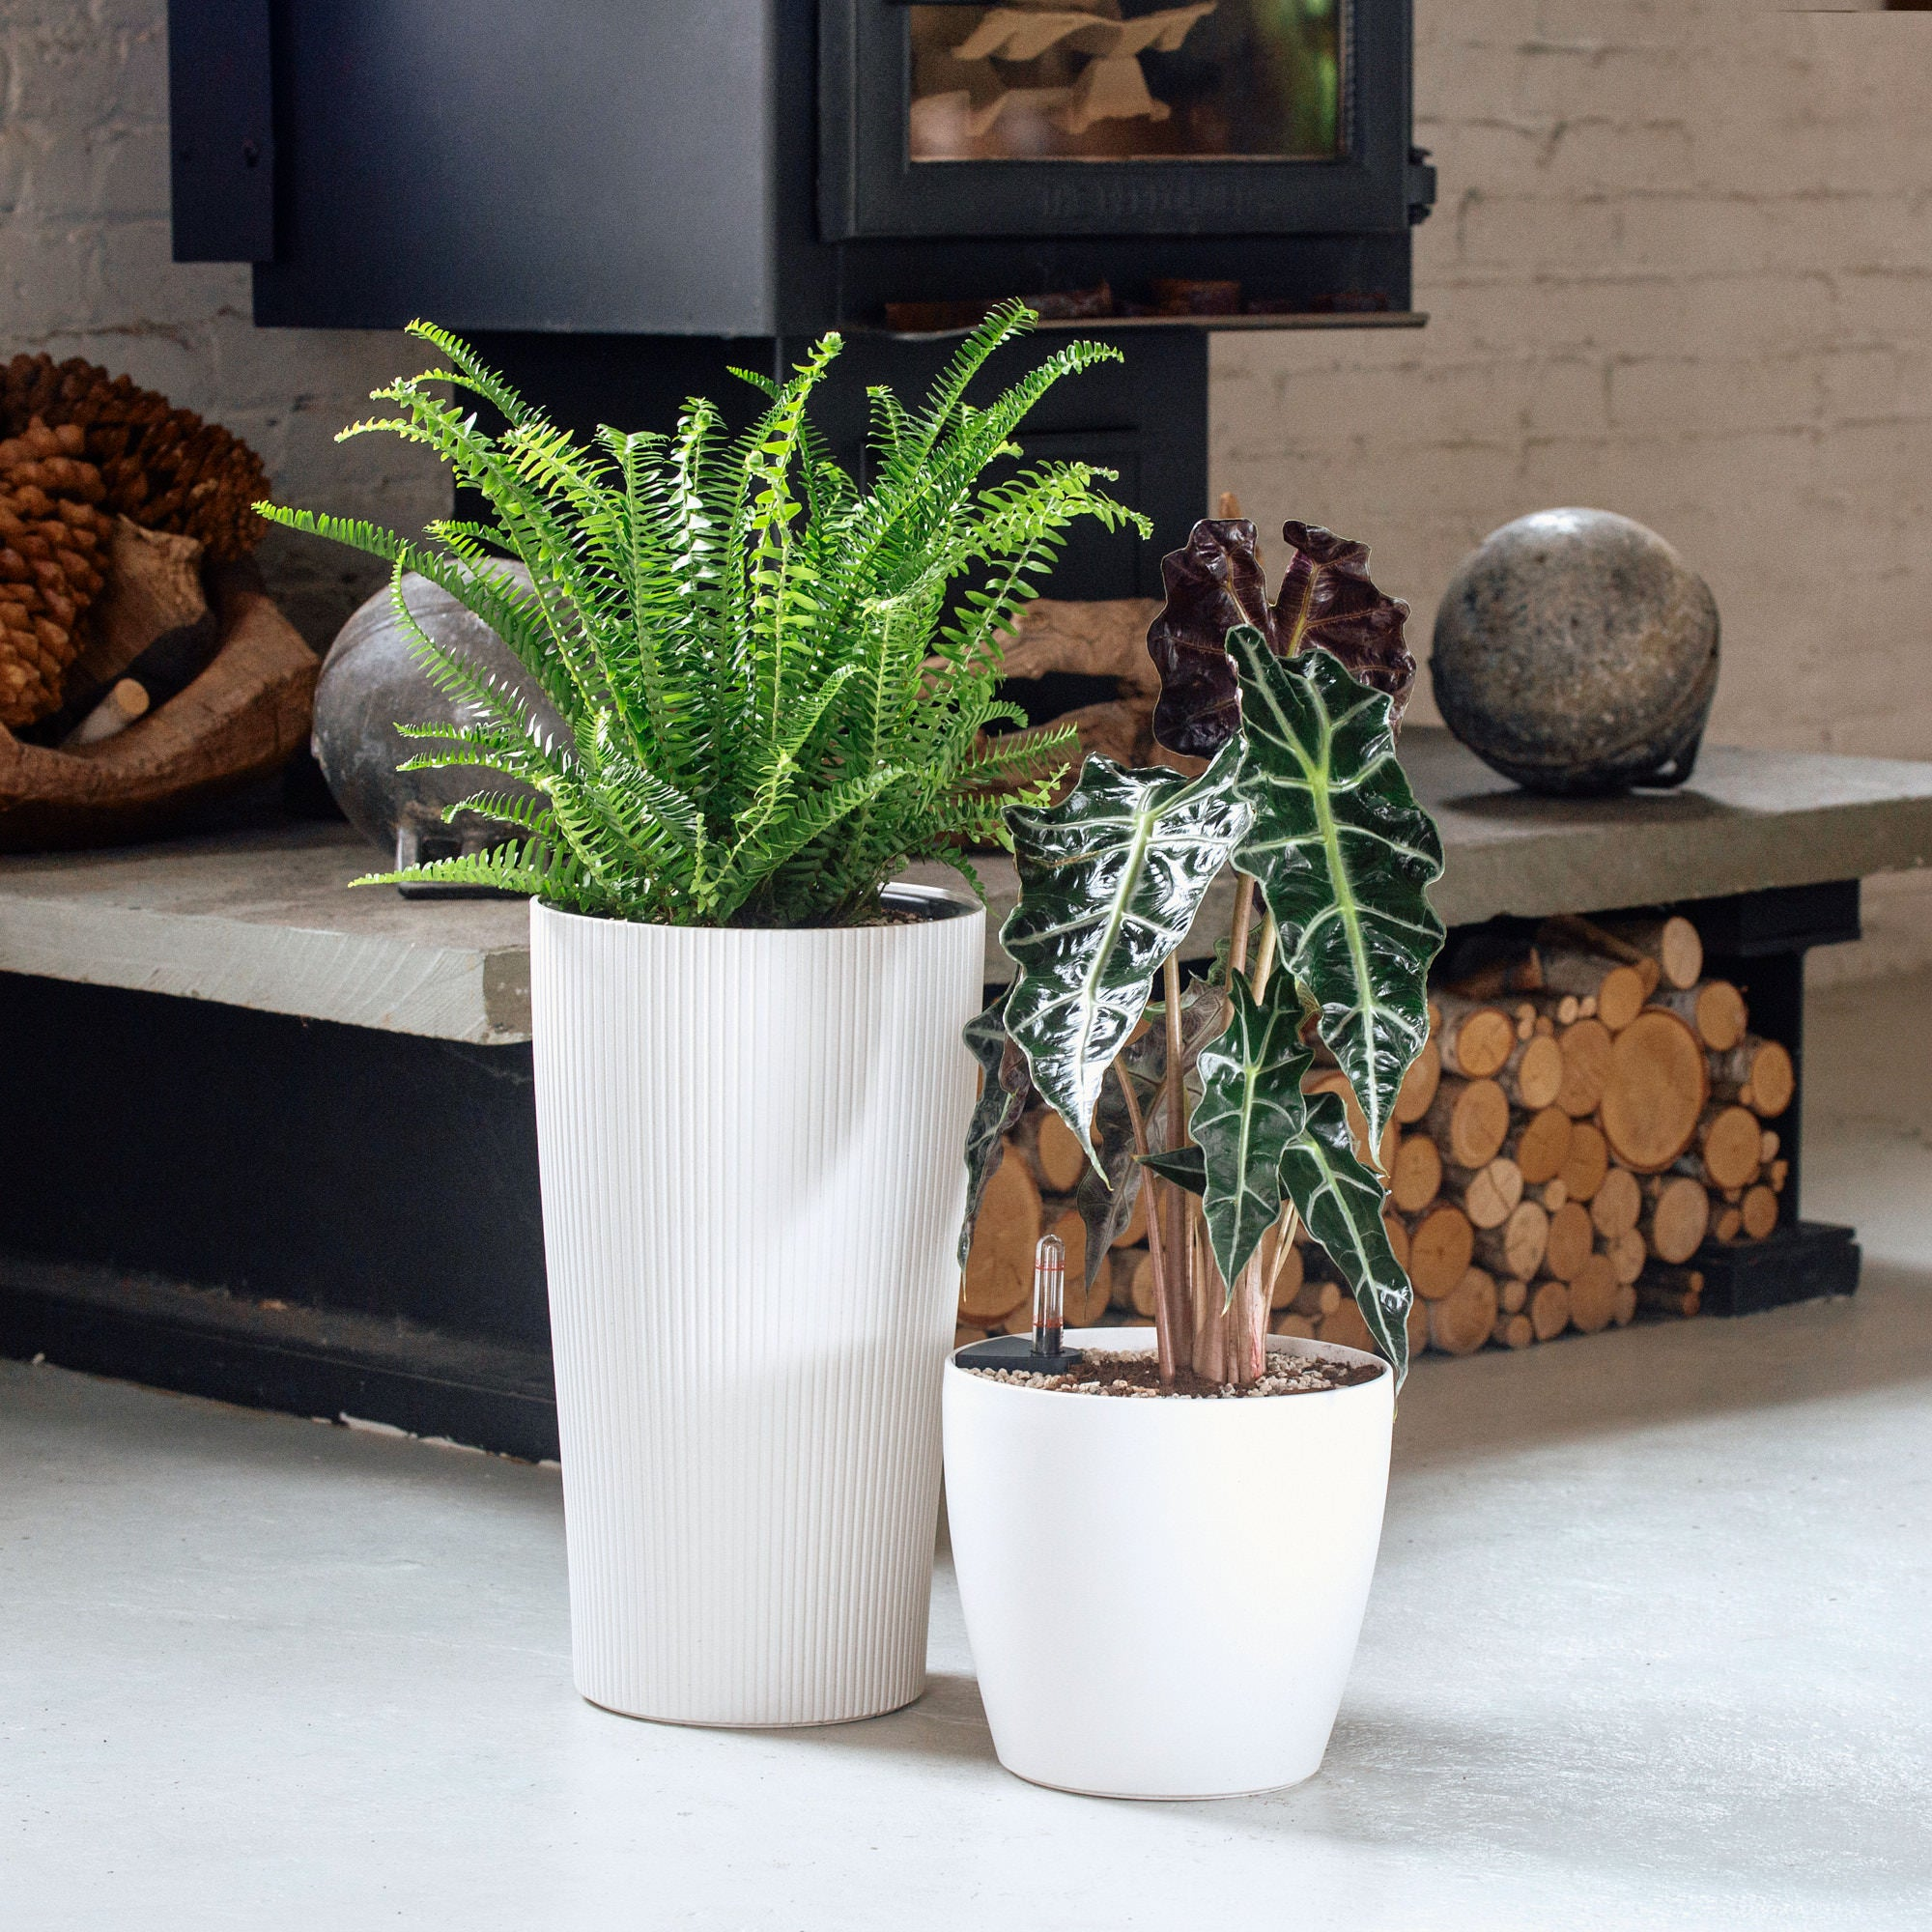 Astoria Plant Bundle In Self-watering Planters